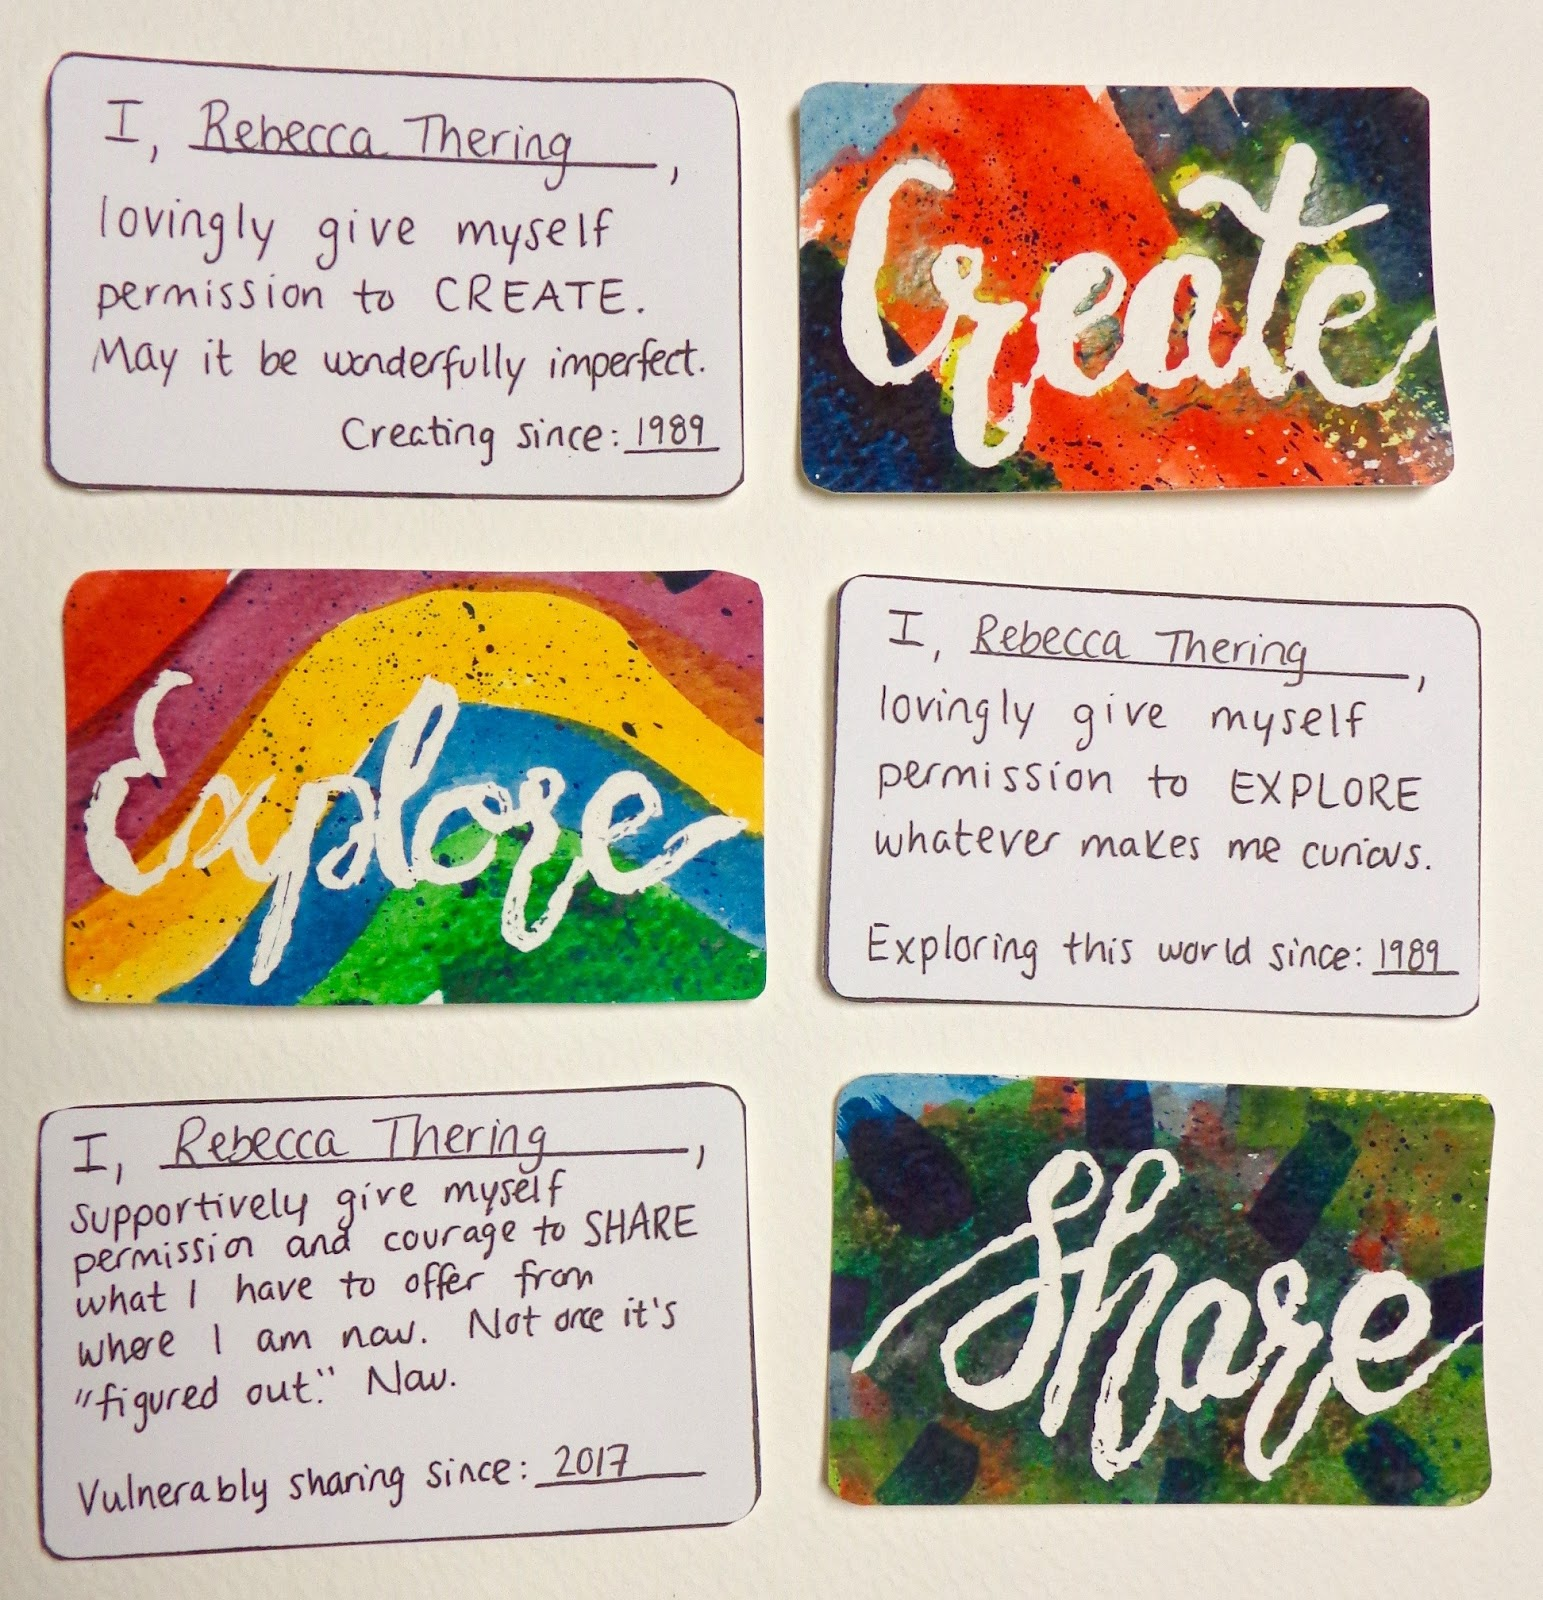 Self-permission cards - to create, explore, and share